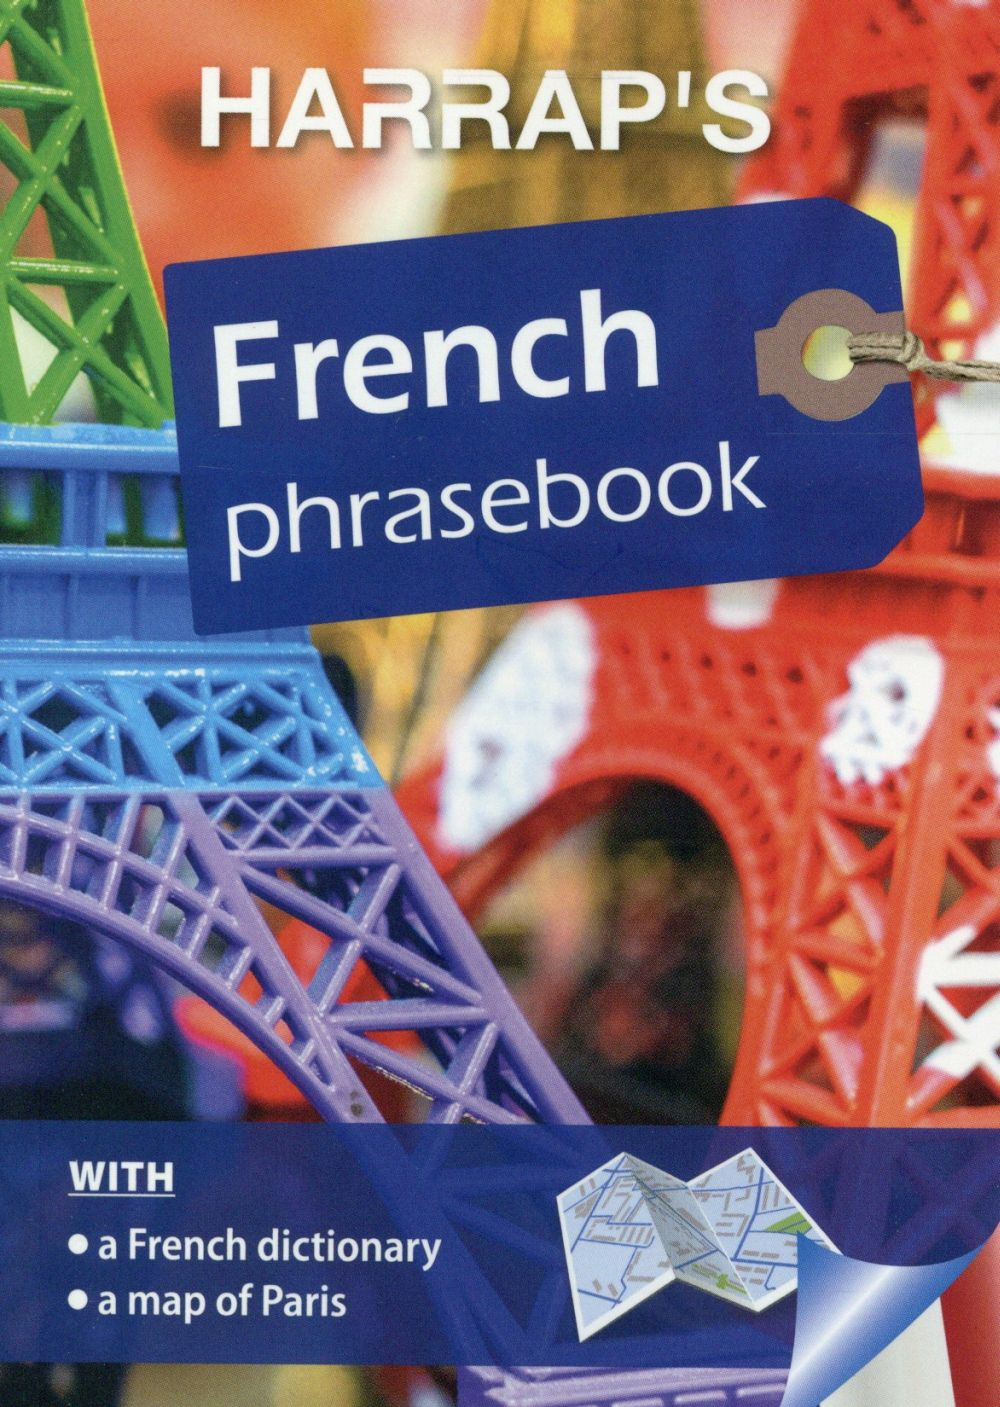 HARRAP'S FRENCH PHRASEBOOK Grundy Valerie Harrap 's